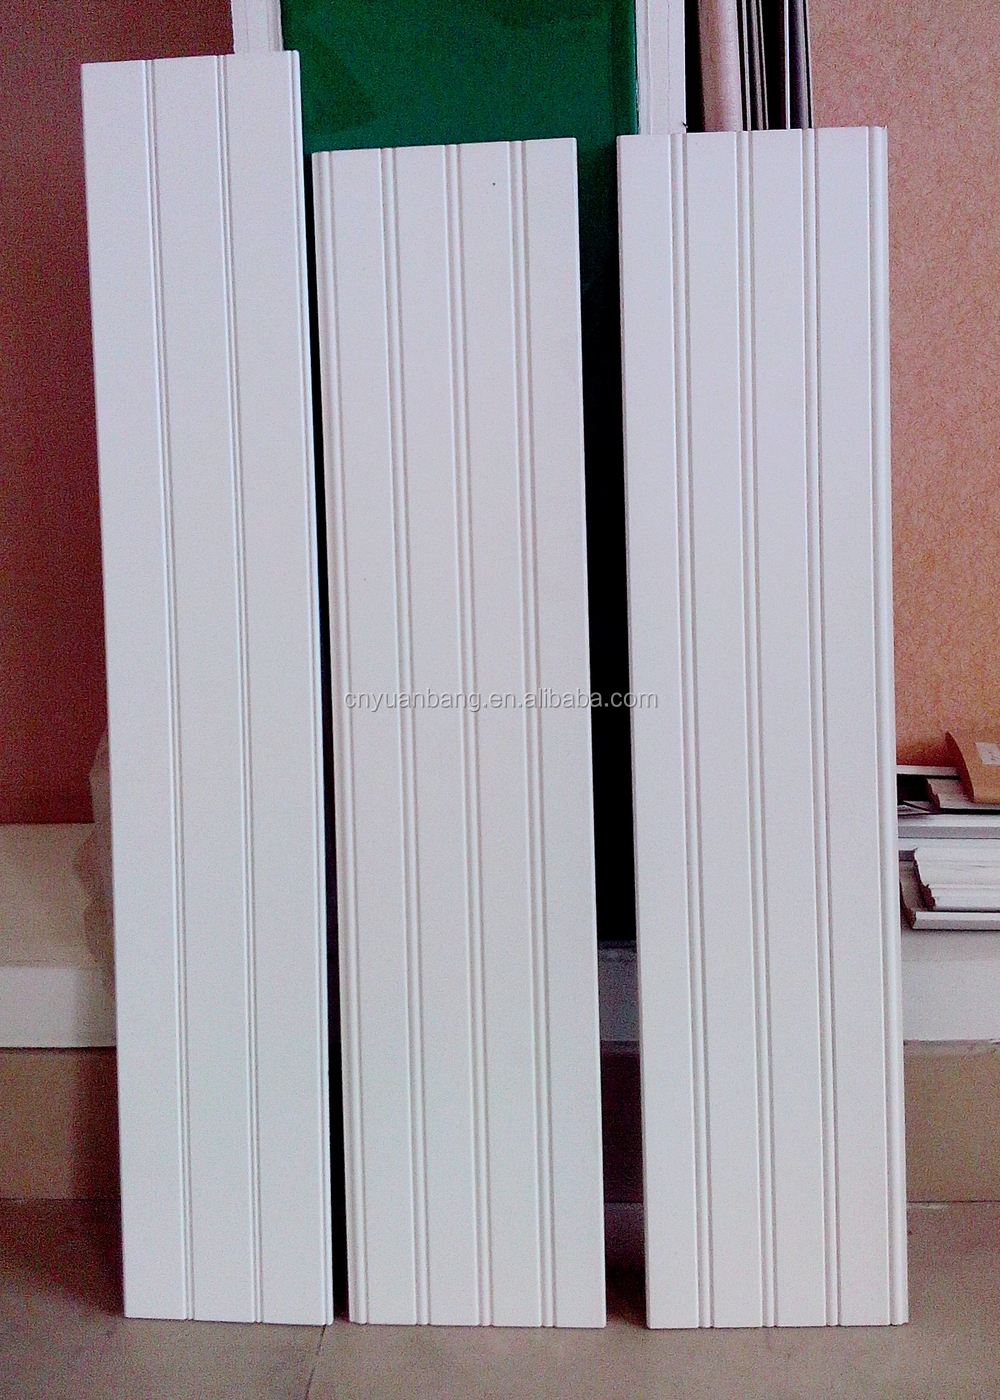 Modern decorative primed mdf wall panel 0527 buy for Decorative mdf